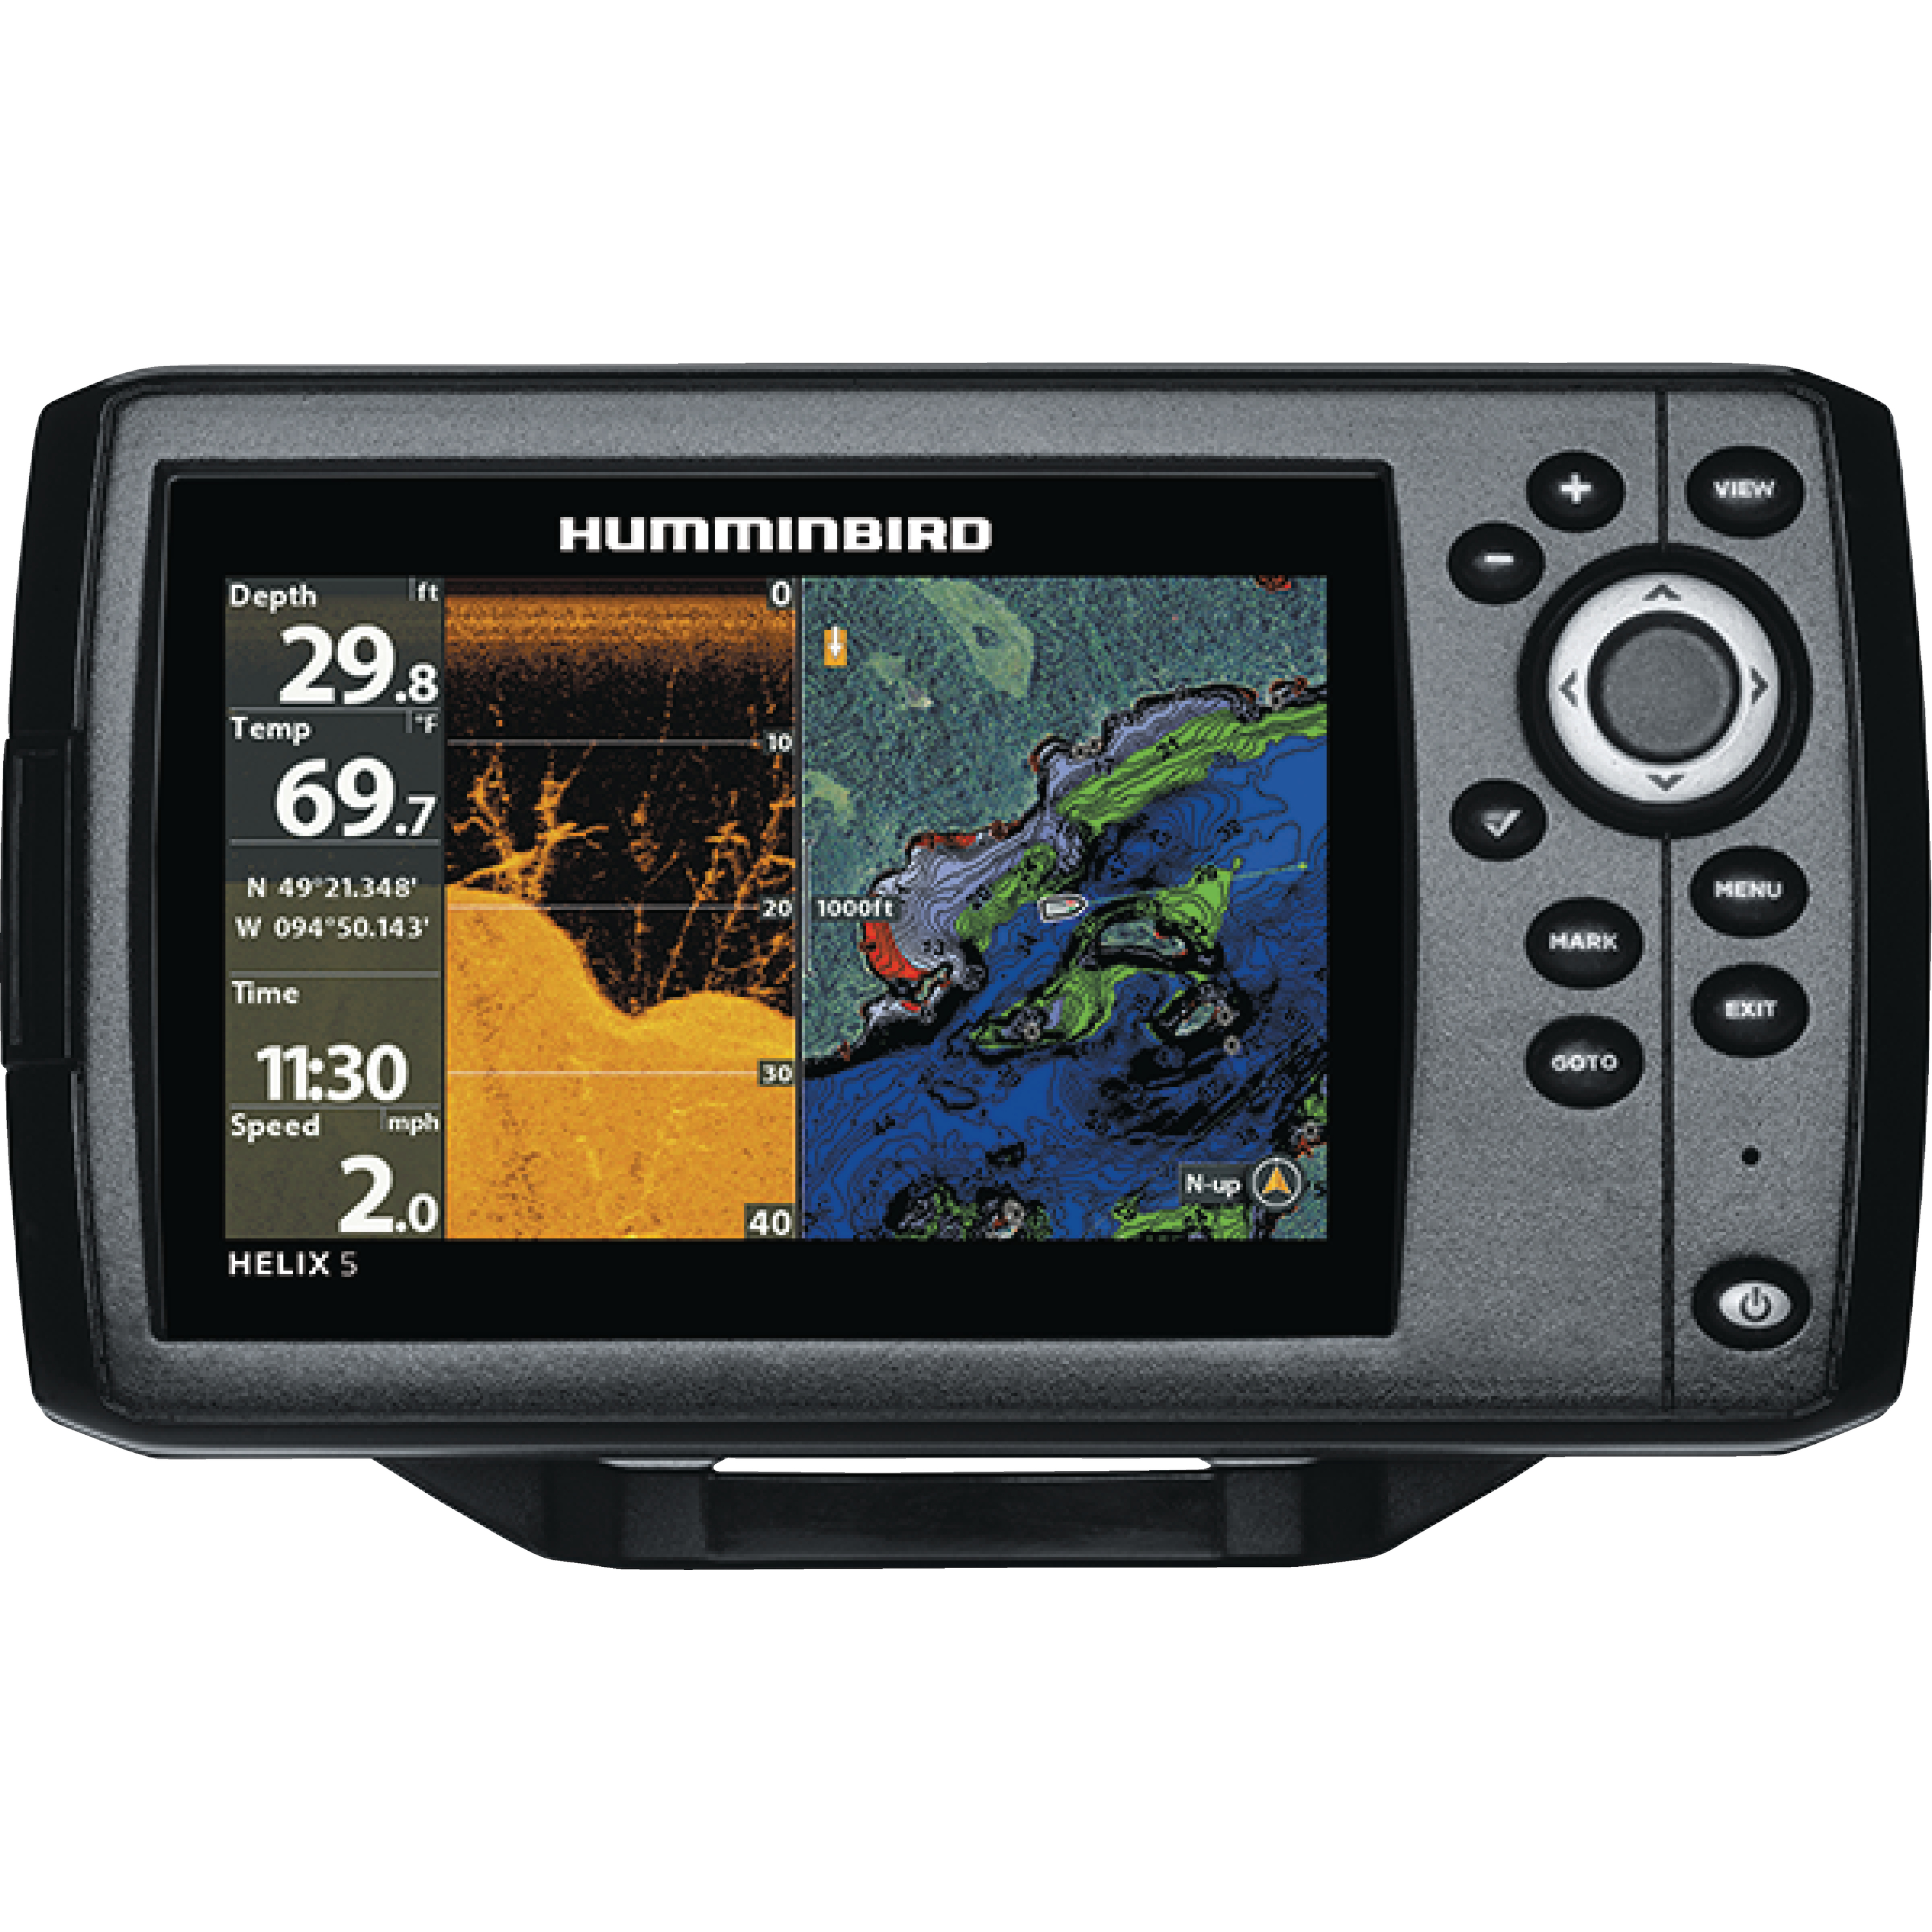 "Humminbird 410220-1NAV HELIX 5 CHIRP DI GPS G2 Sonar Fishfinder & Chartplotter with Down Imaging, Navionics & 5"" Display"